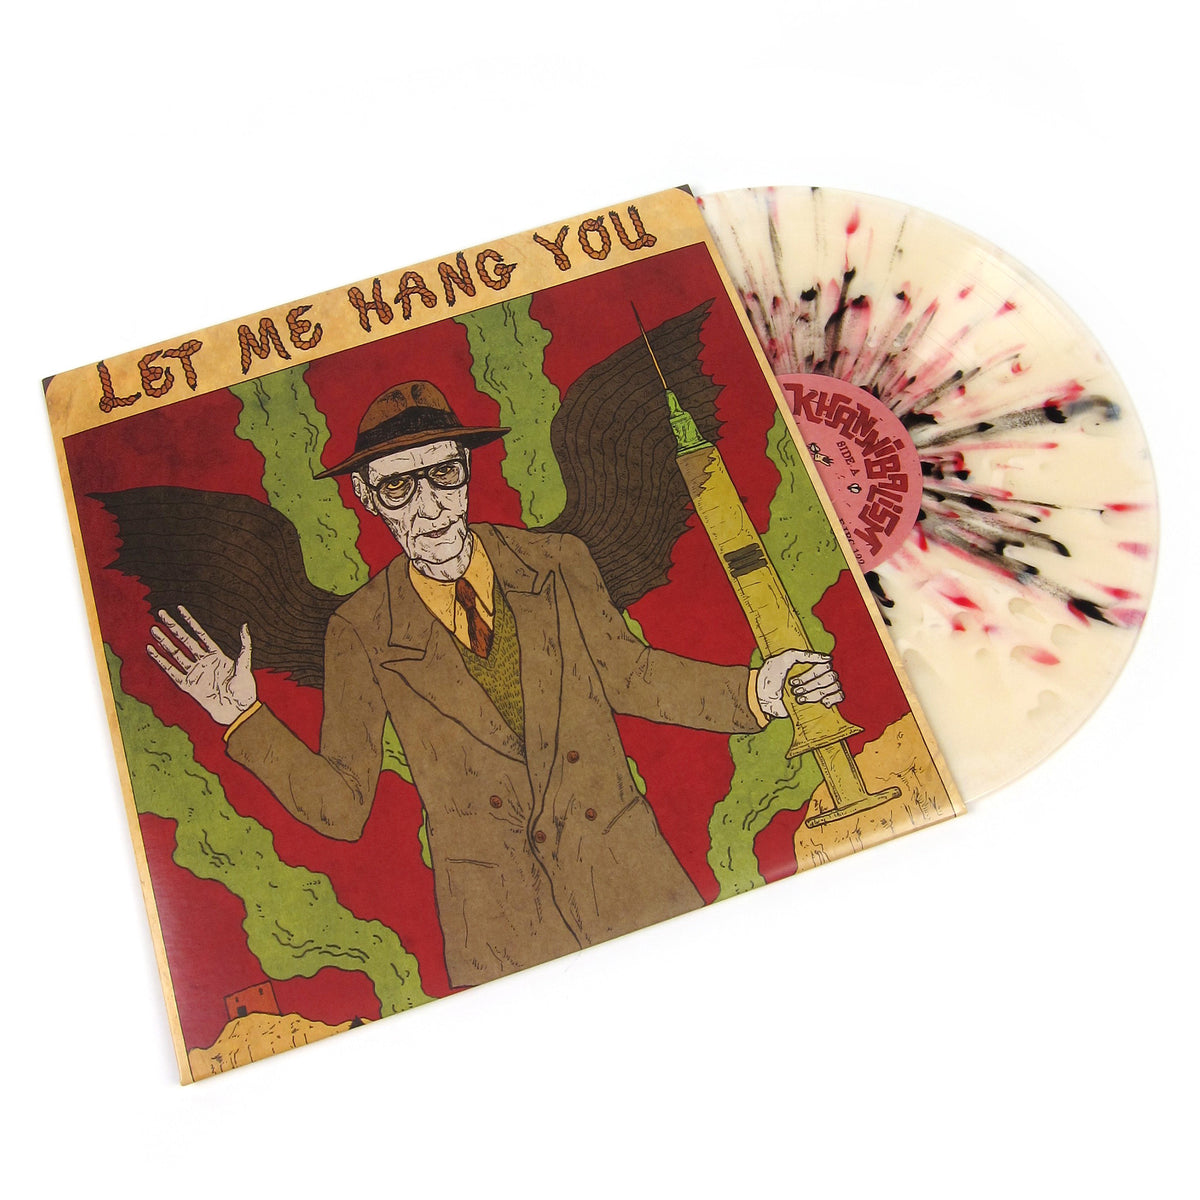 William S. Burroughs: Let Me Hang You (Naked Lunch) Vinyl LP